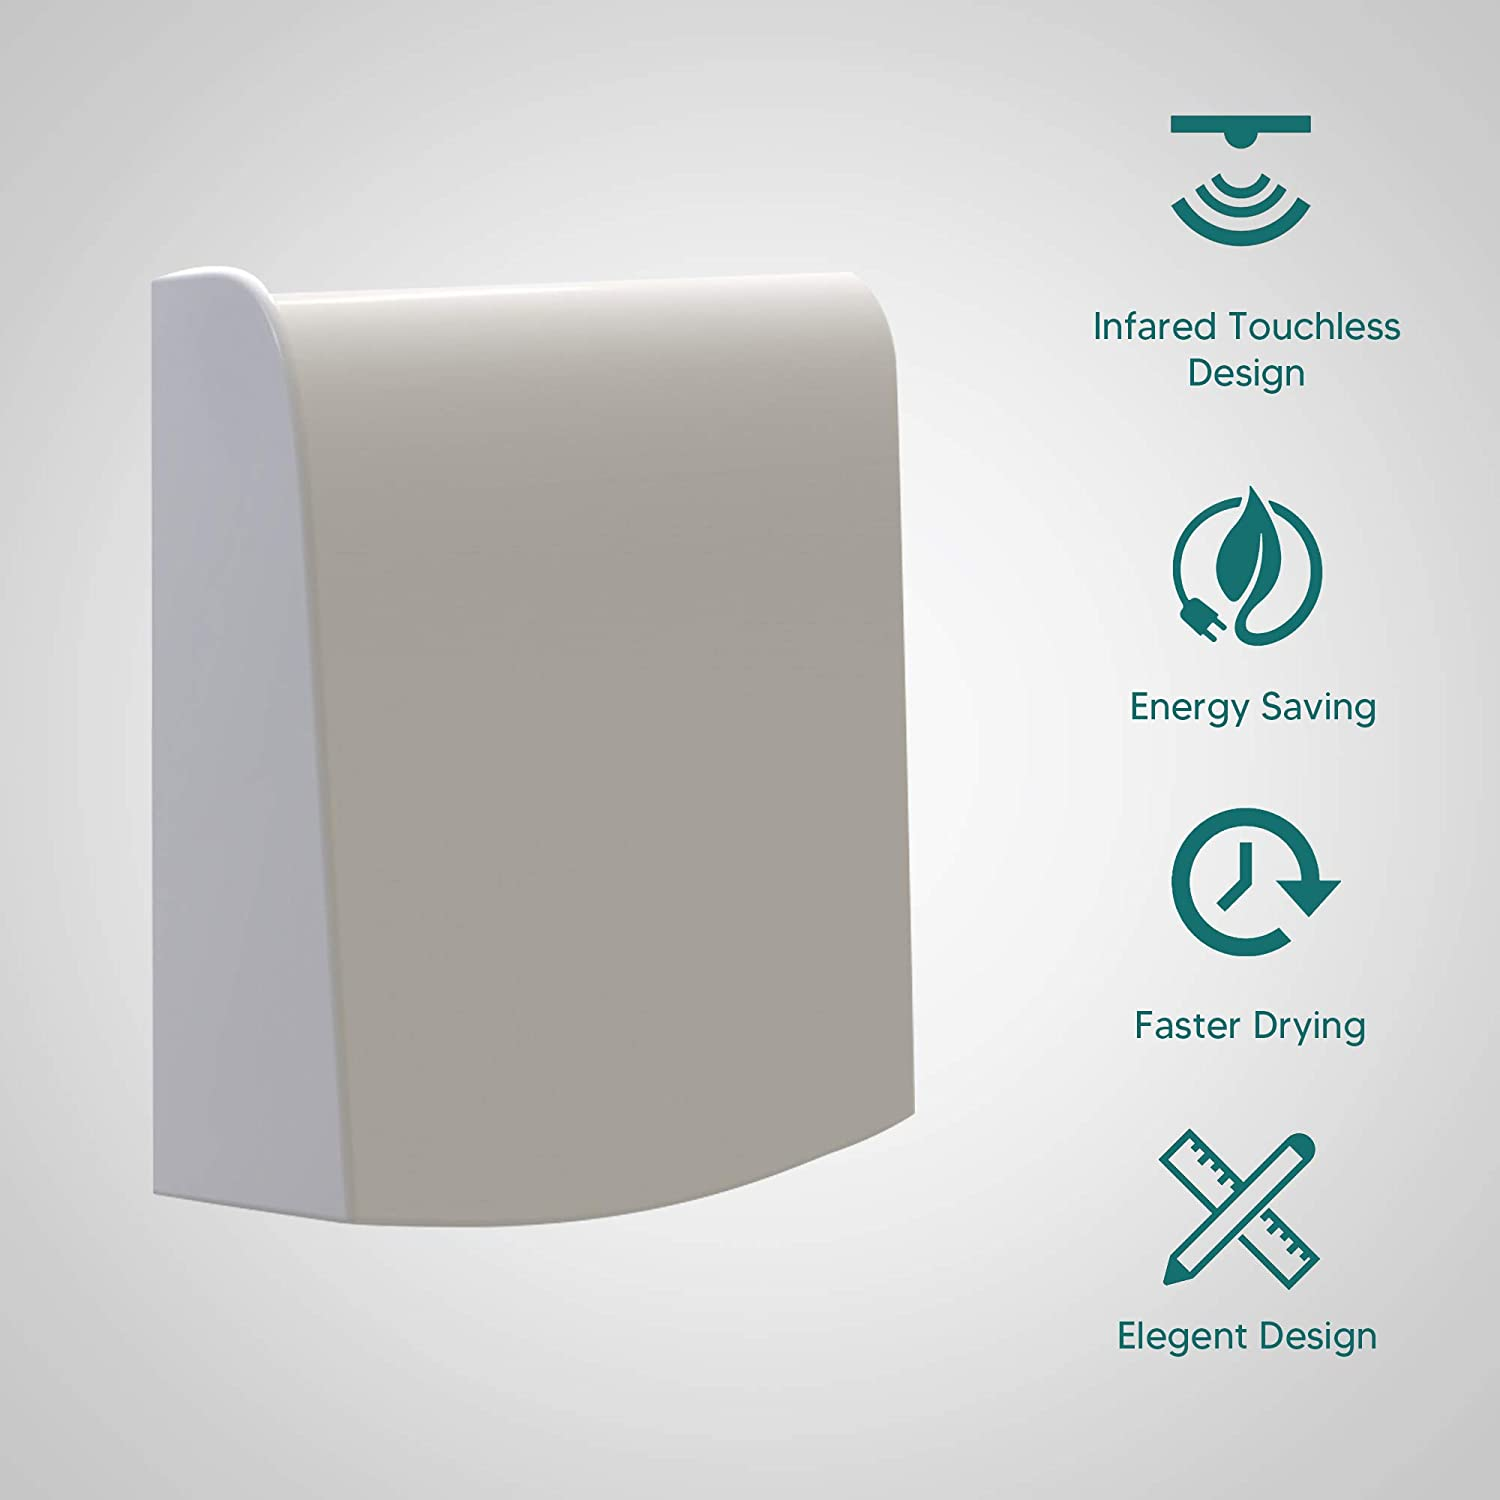 High Speed Compact Bathroom Hand Dryer for Public Restrooms Commercial and Household Victories Hand Dryer with HEPA Filter Ultra-Thin and Quiet Design Materials Energy-Saving Design